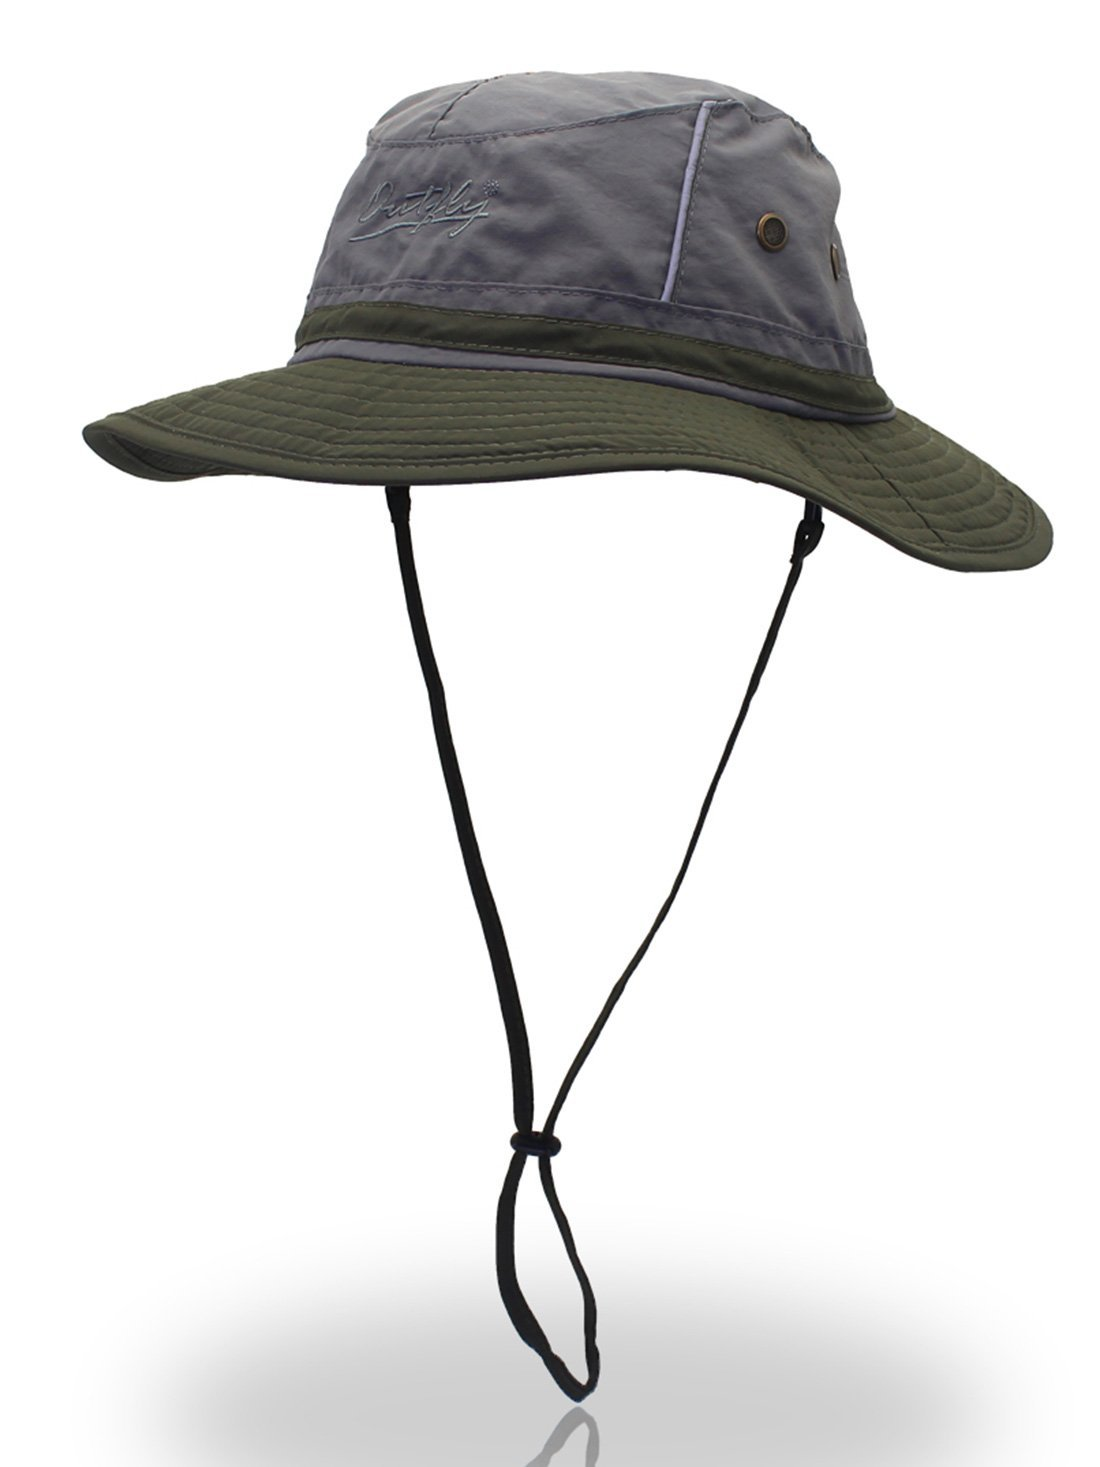 Get Quotations · Panegy Outdoor Summer Sun Hats Fishing Anti-UV Ultralight  Fashion Colorblock Boonie Bucket Hats 360 efb4f8128bd1